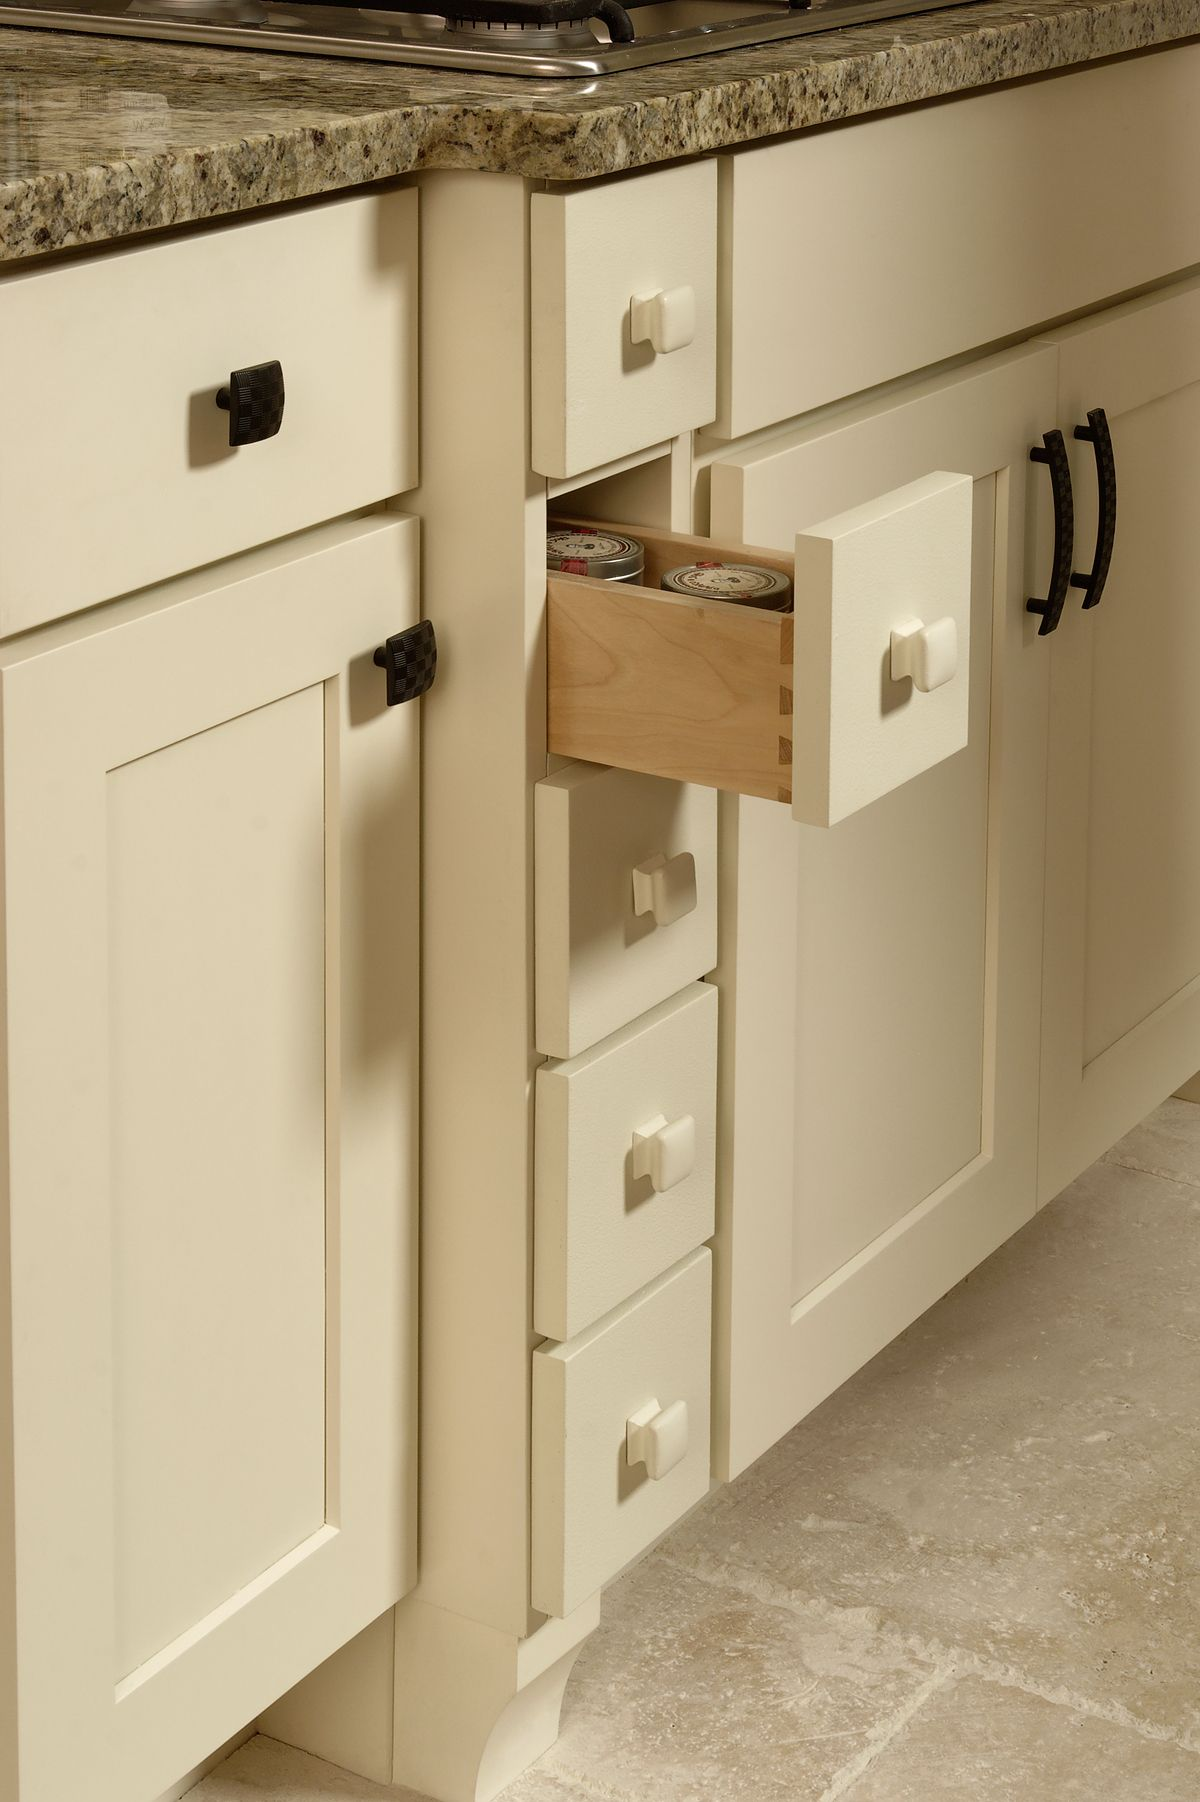 Spice Drawer Cabinets Built In Kitchen Cabinet Storage Contemporary Kitchen Cabinets Kitchen Cabinet Doors Kitchen Cabinet Storage